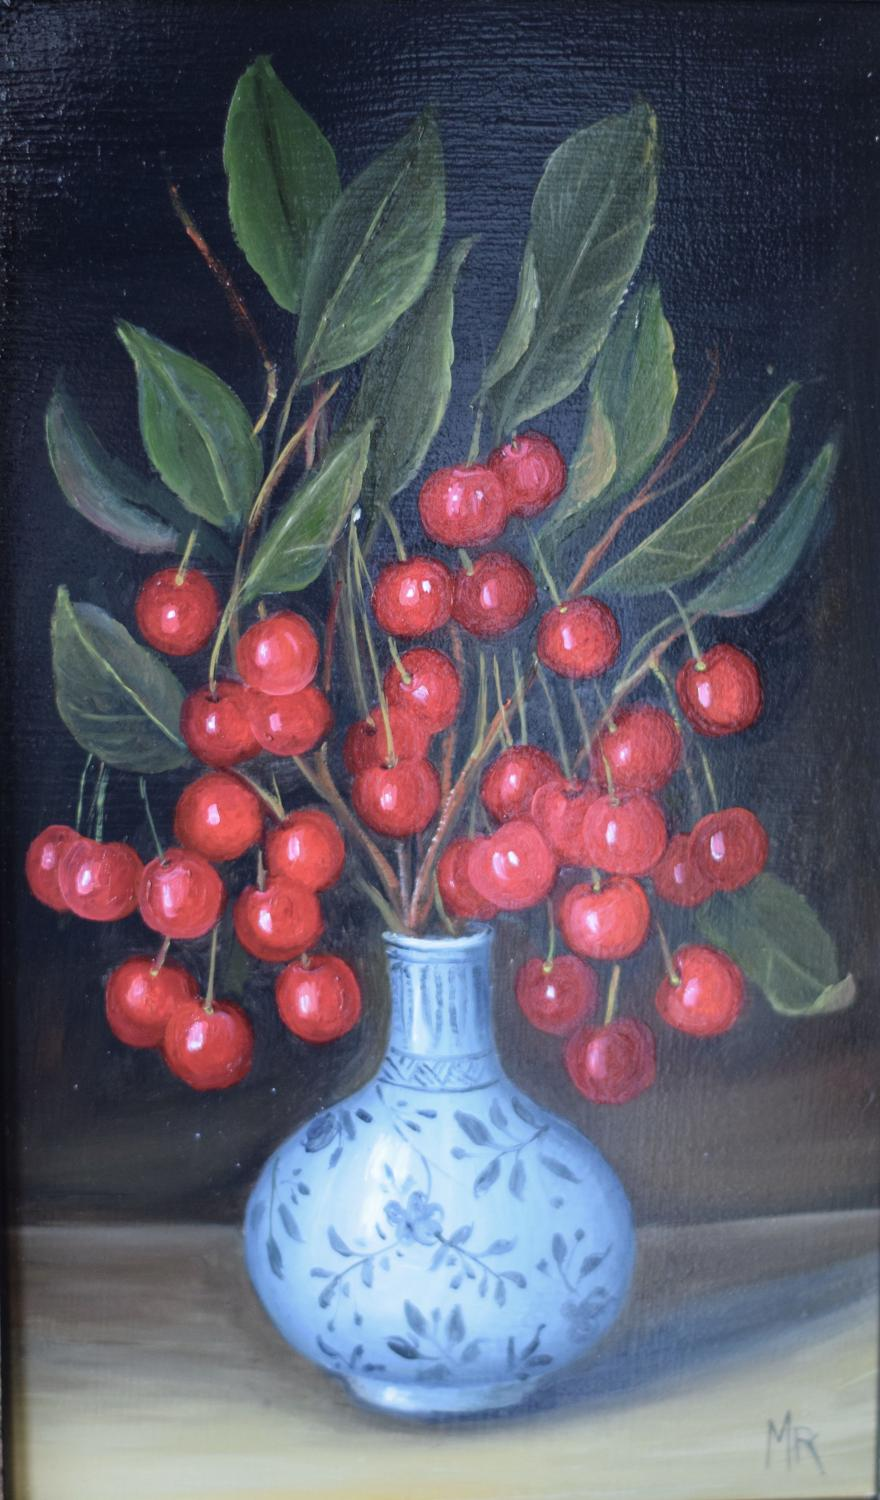 Vase of cherries